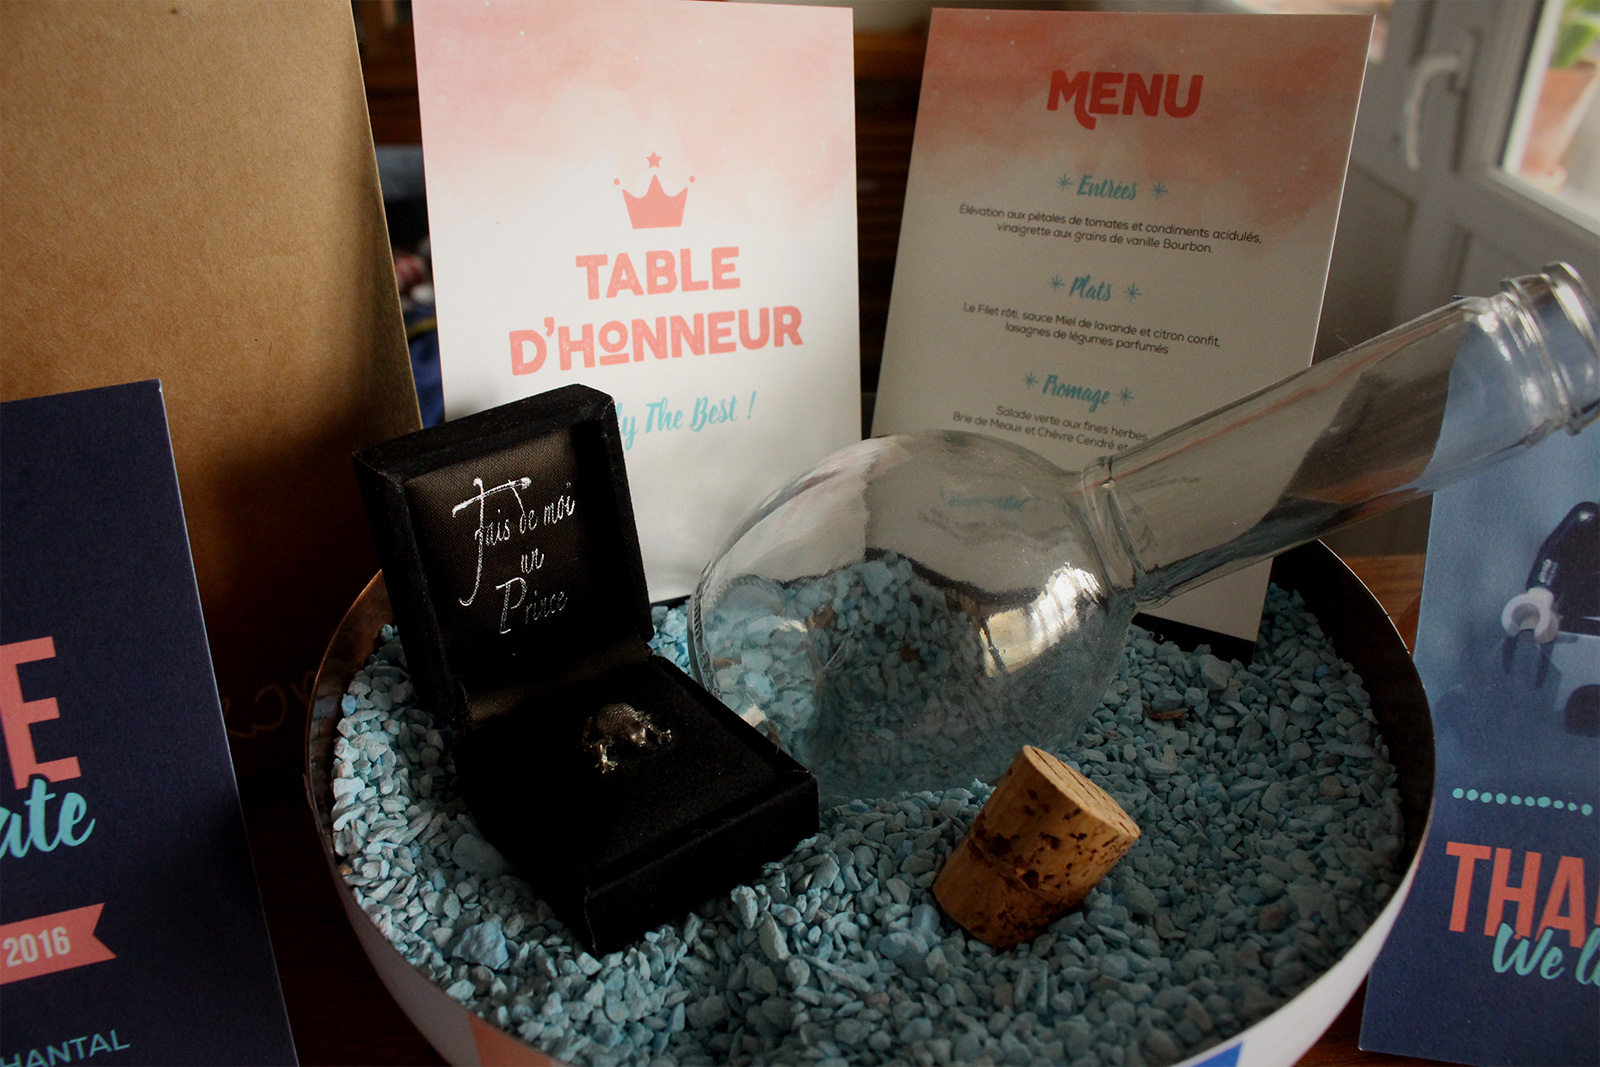 menu & n° table